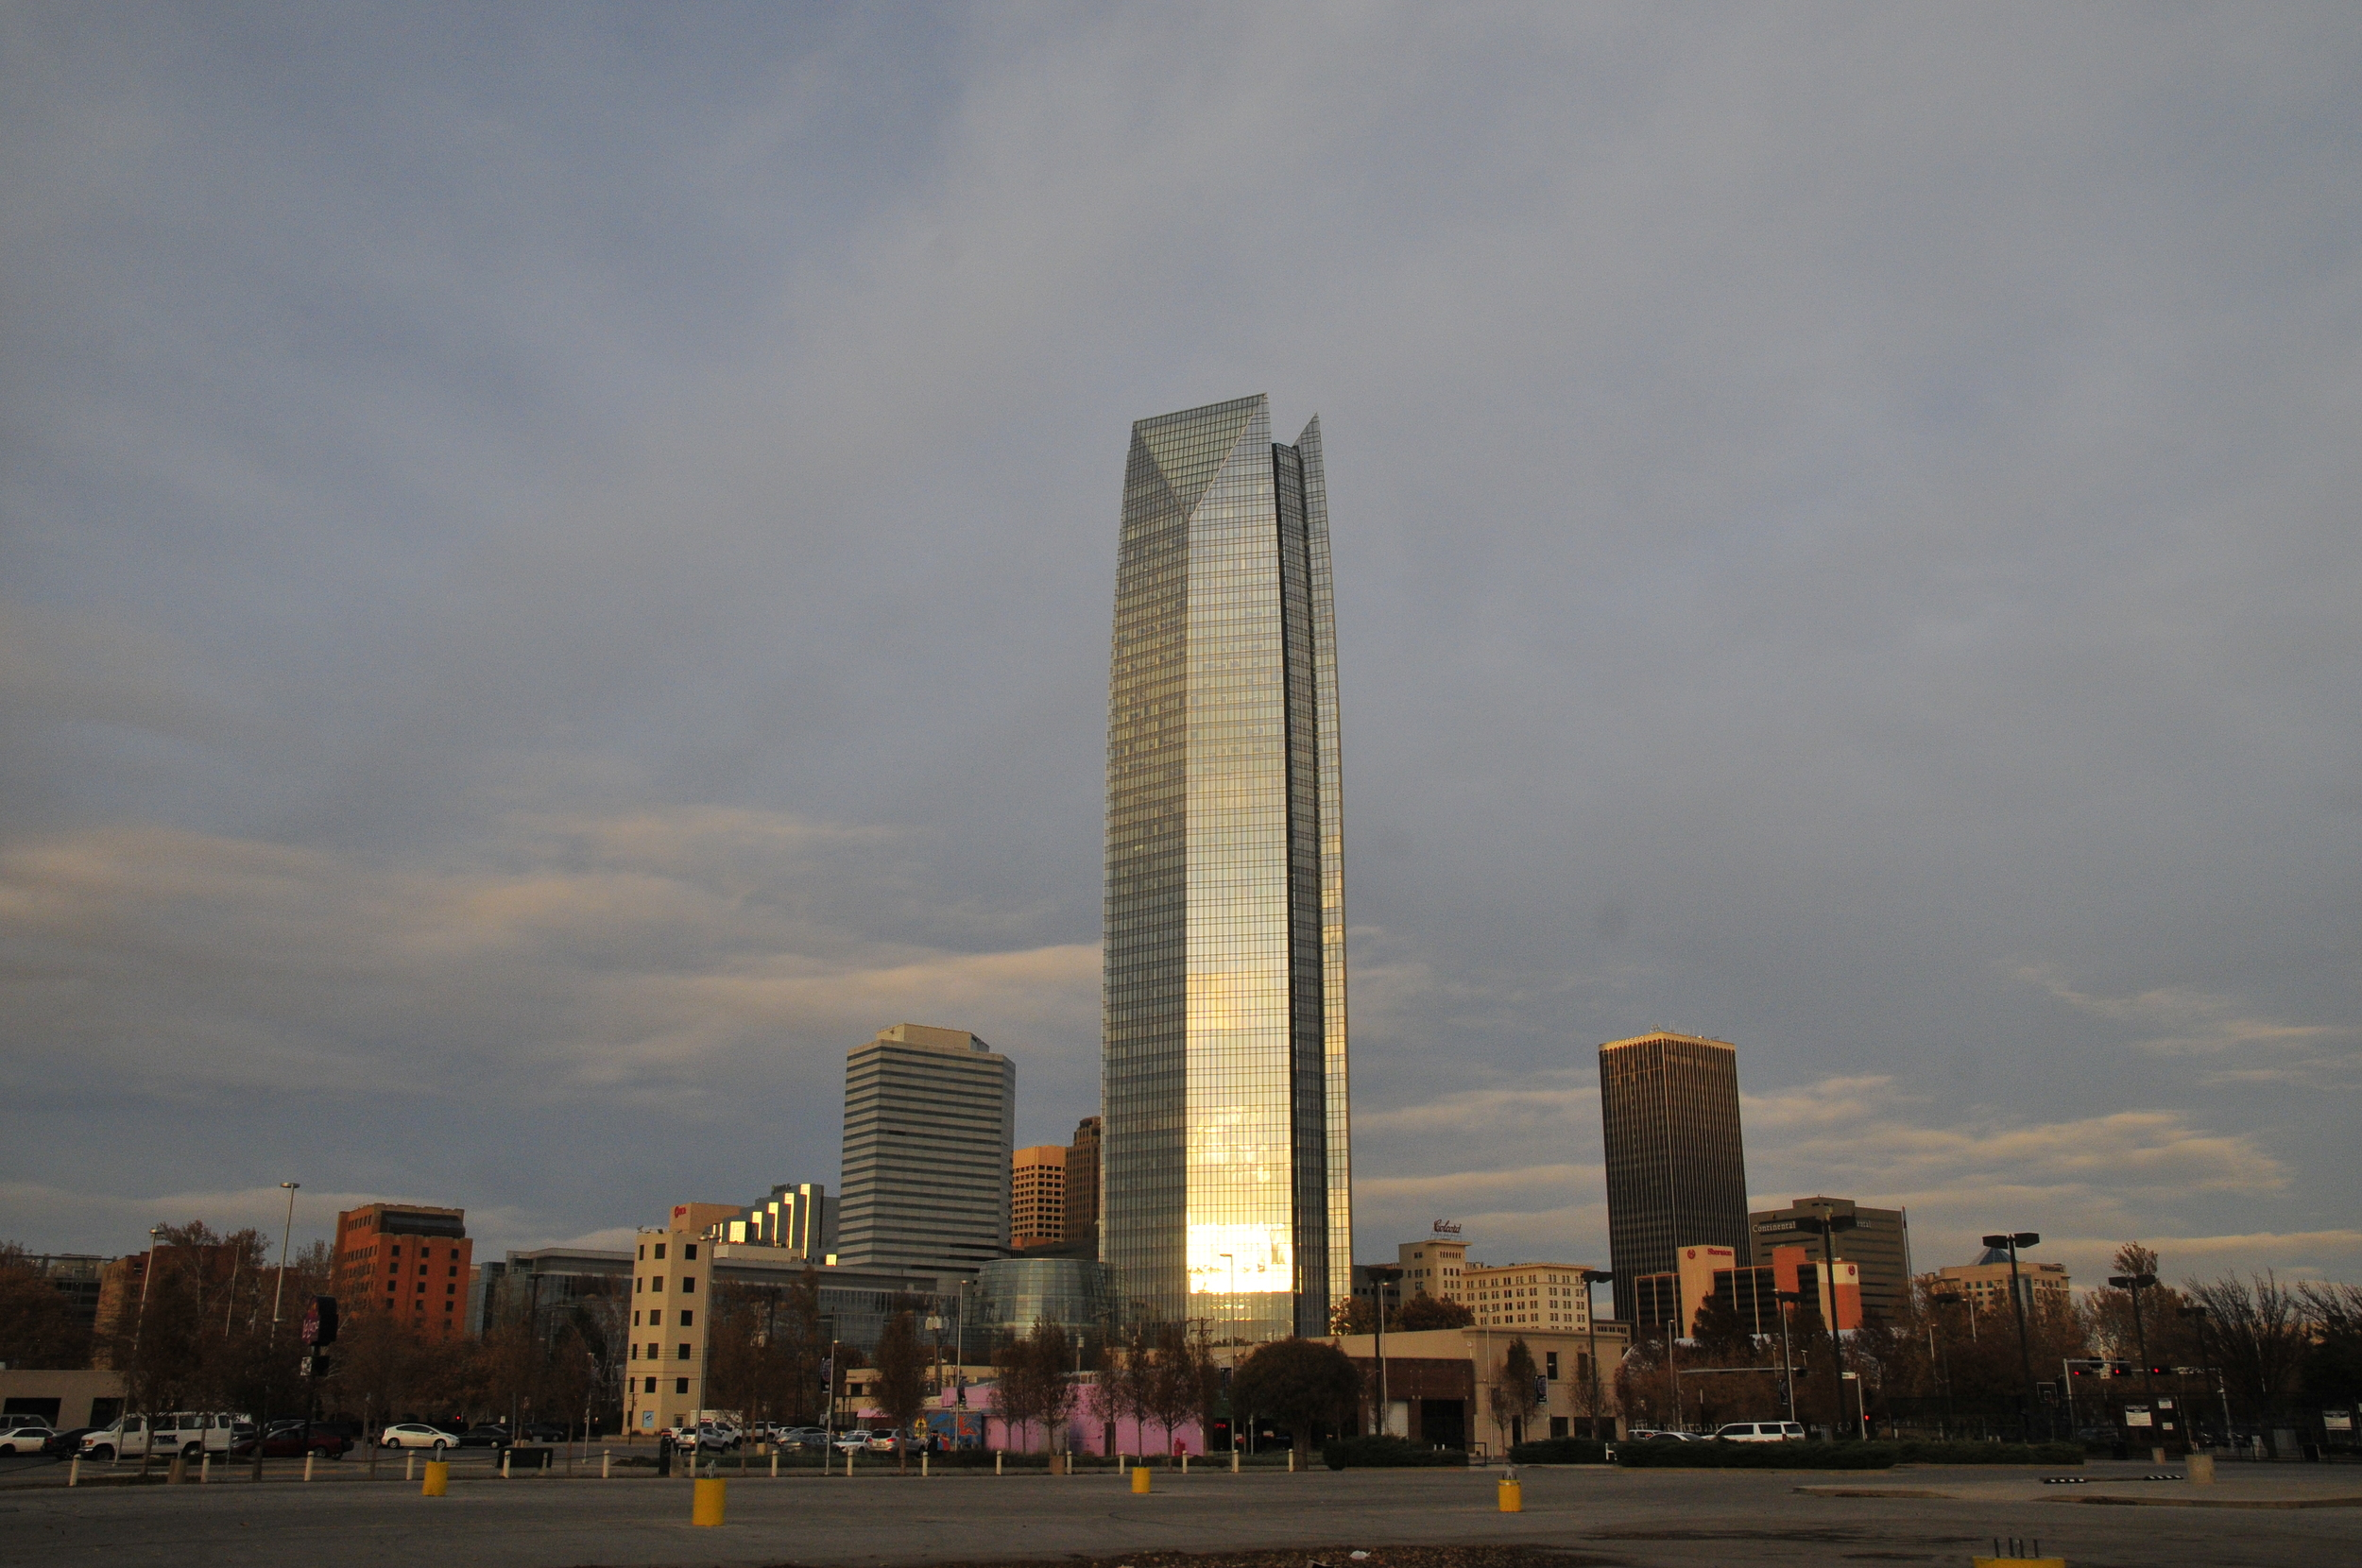 The Devon Energy Center stands out above the rest of the skyline in Oklahoma City.